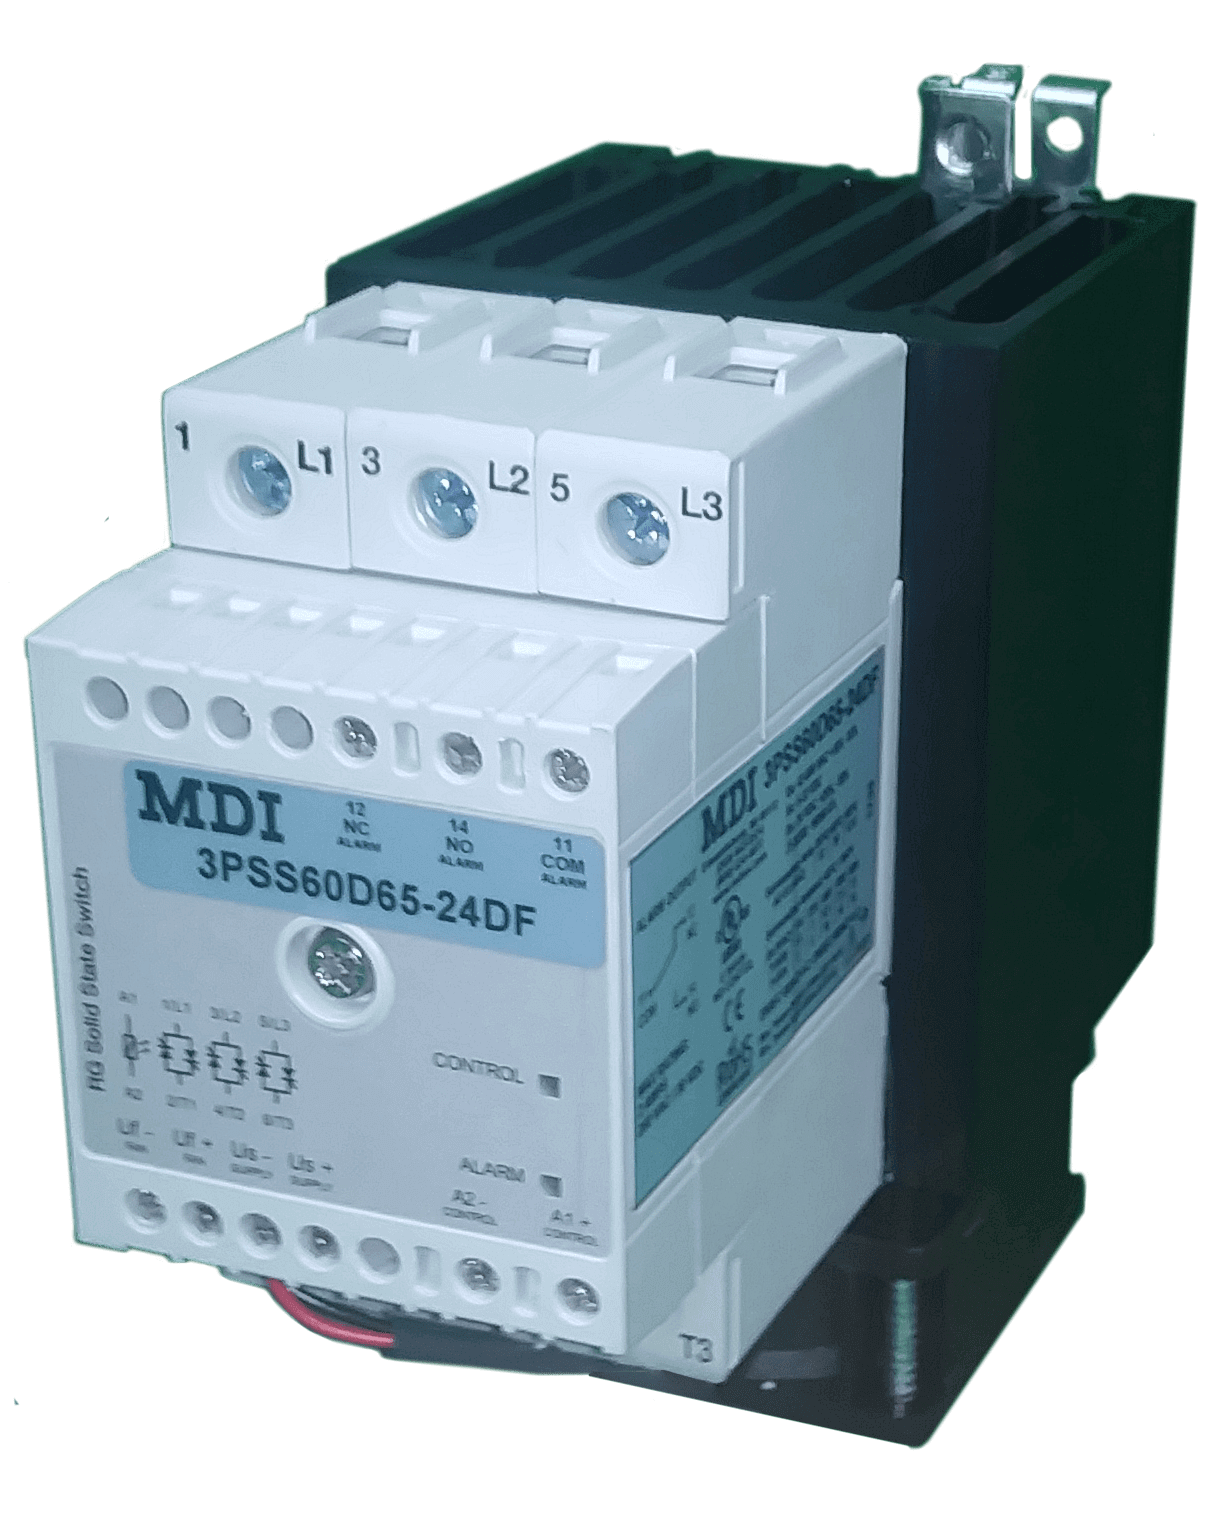 Solid State Relay Ssr 3 Pole Phase 65 Amp 42 600 Vac For Dc Aac Control